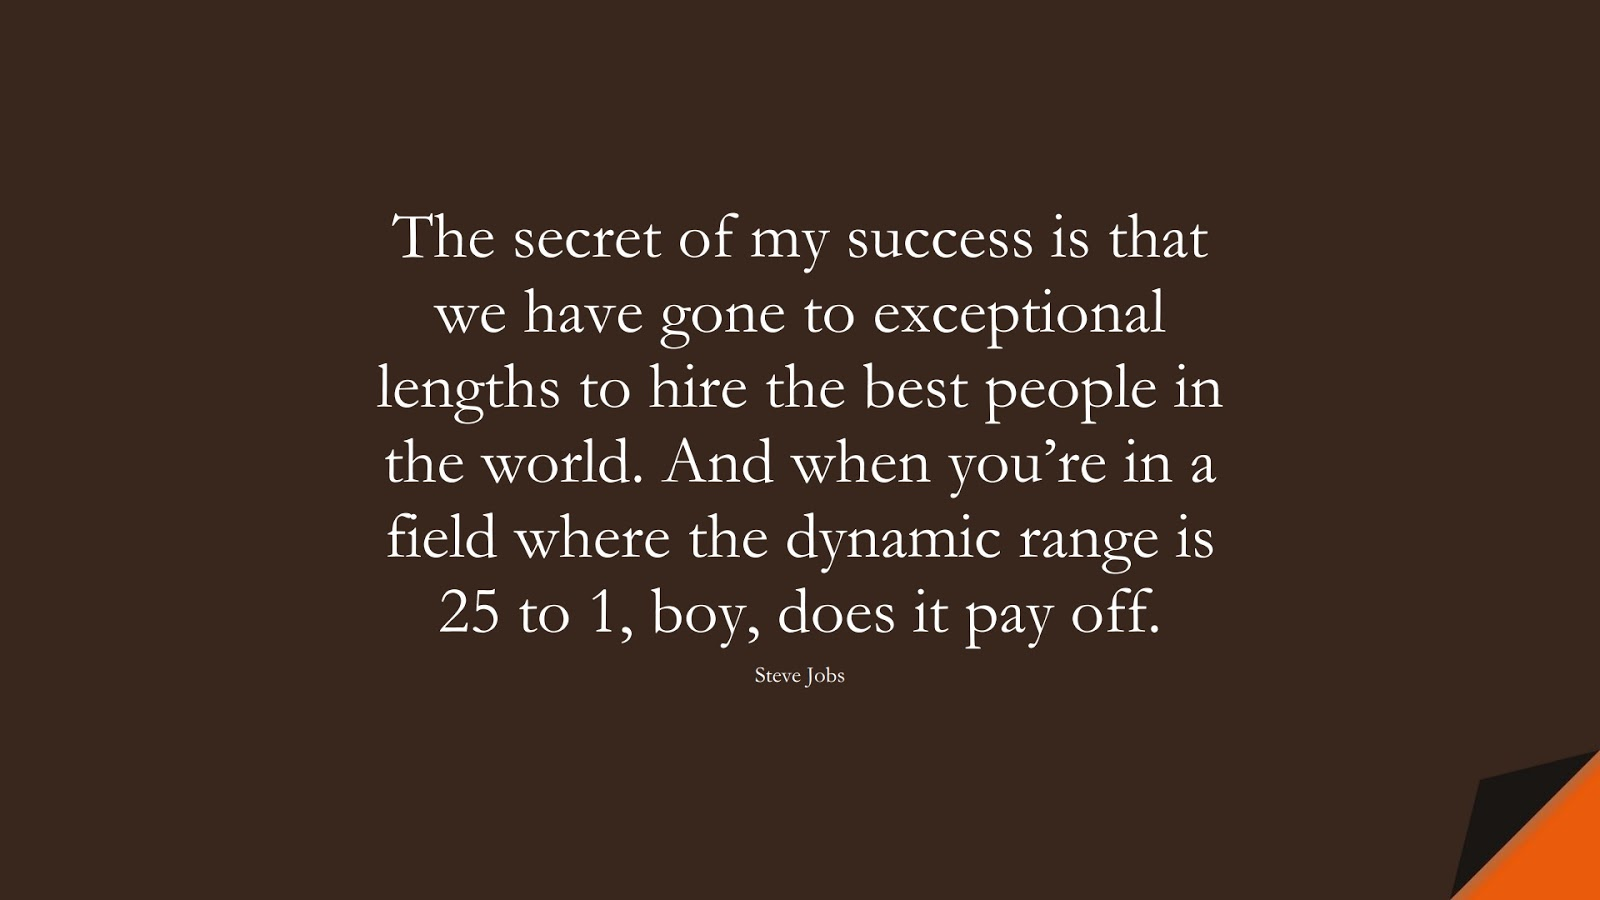 The secret of my success is that we have gone to exceptional lengths to hire the best people in the world. And when you're in a field where the dynamic range is 25 to 1, boy, does it pay off. (Steve Jobs);  #SteveJobsQuotes